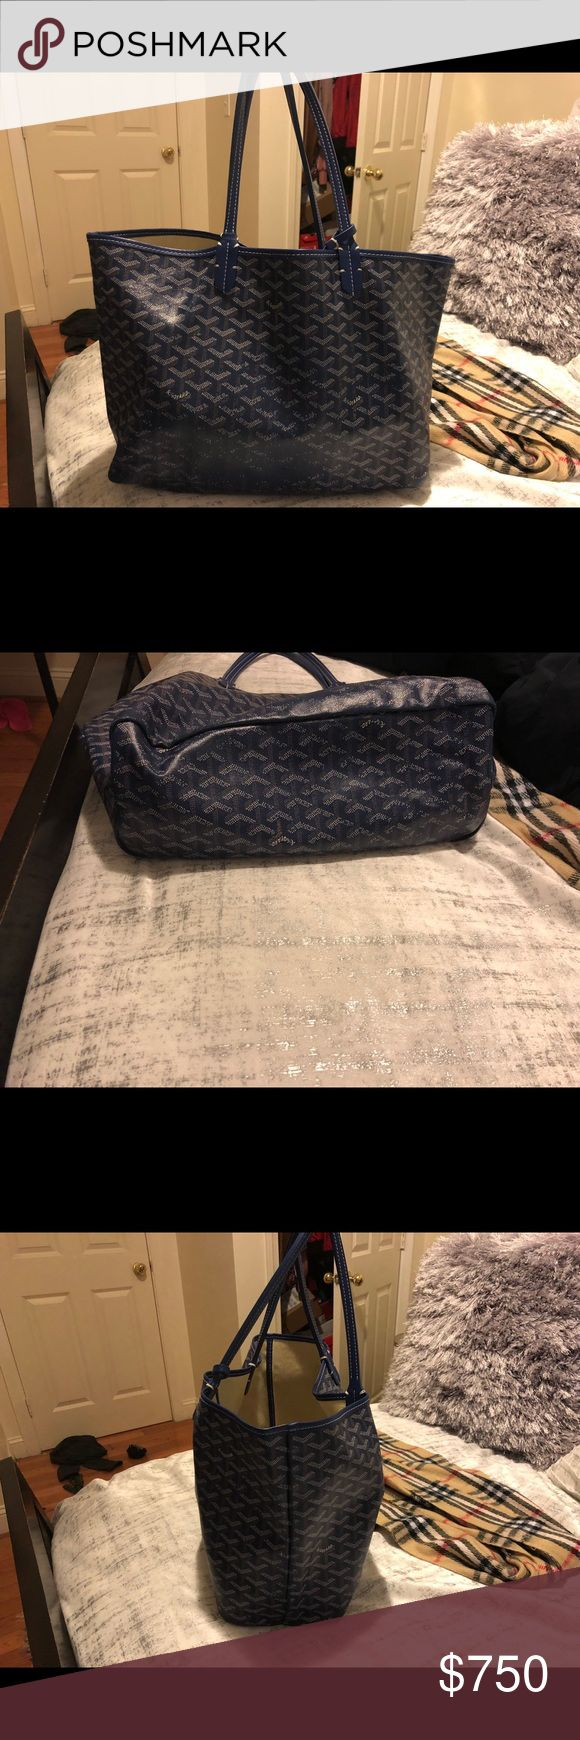 Goyard Tote medium size Royal blue A loved bag. The paint on the bottom on the bag is wearing off. Only certain spots. Inside has marks. Other than that the bag is literally still great quality. So much more life this bag has to offer. It is a pm, which actually holds a great abundant of things.  %100 authentic.  Purchased from Barneys, although I no longer have the receipt.    The little pouch is not for sale. Goyard Bags Totes